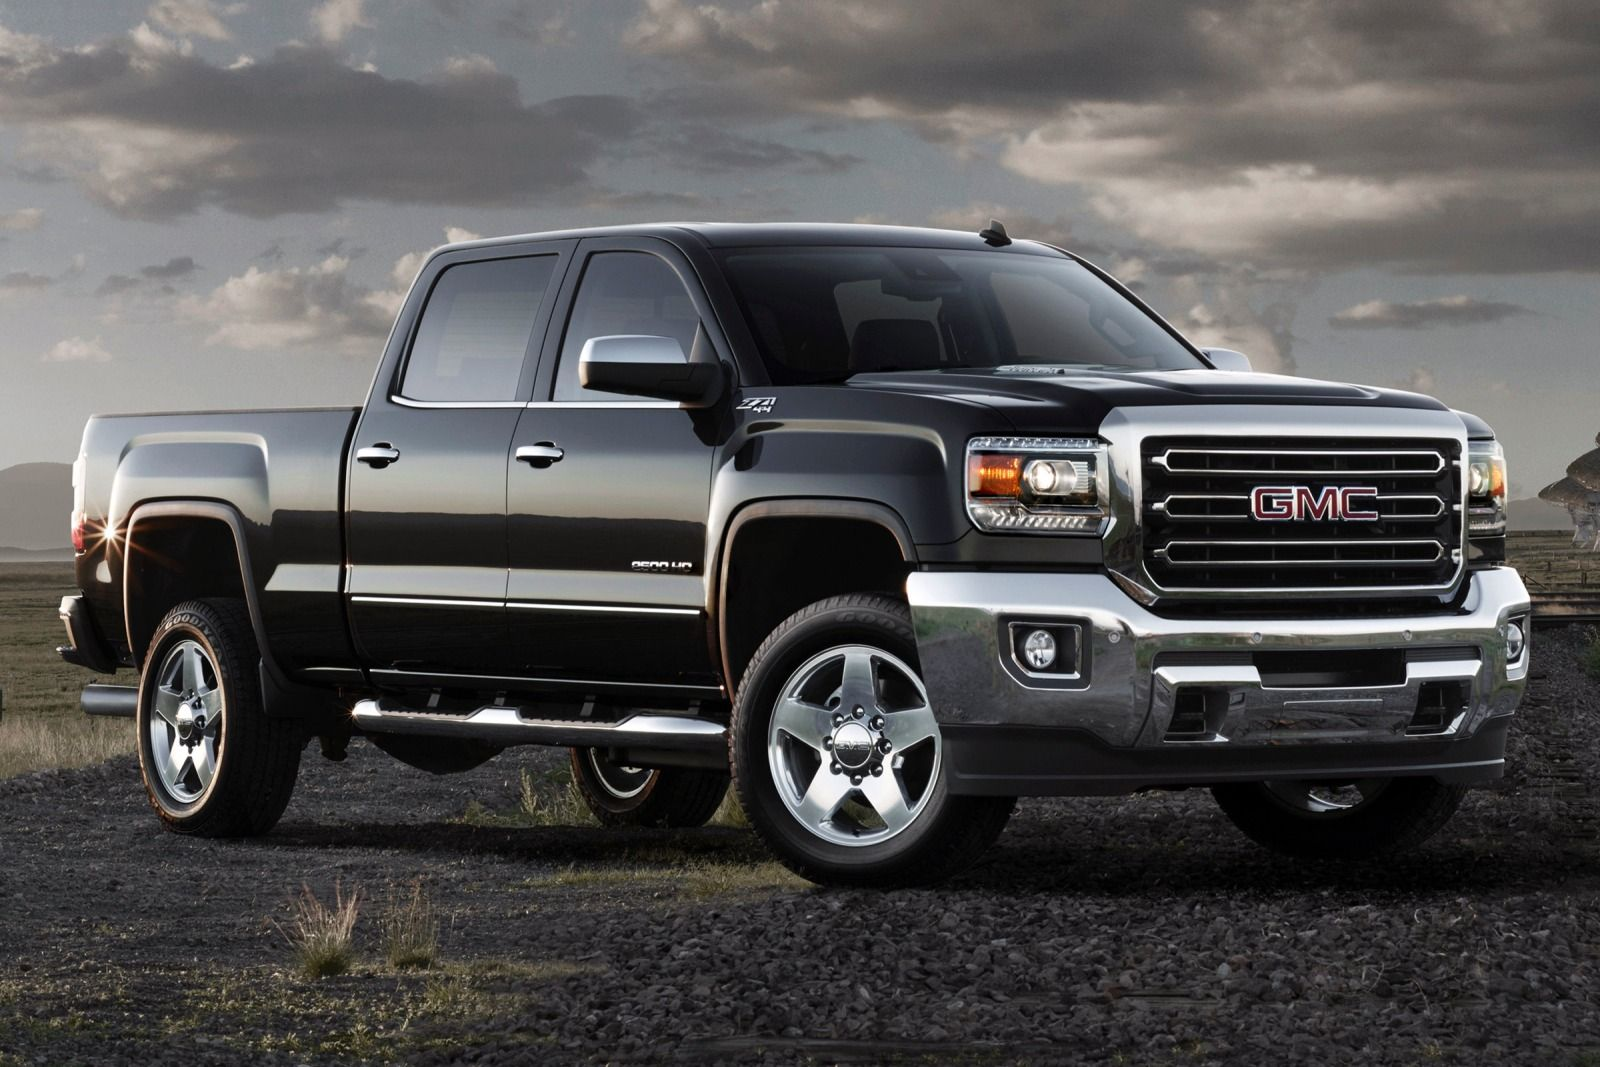 2015 gmc sierra denali 1500 4wd crew cab truck review da luxe. Black Bedroom Furniture Sets. Home Design Ideas